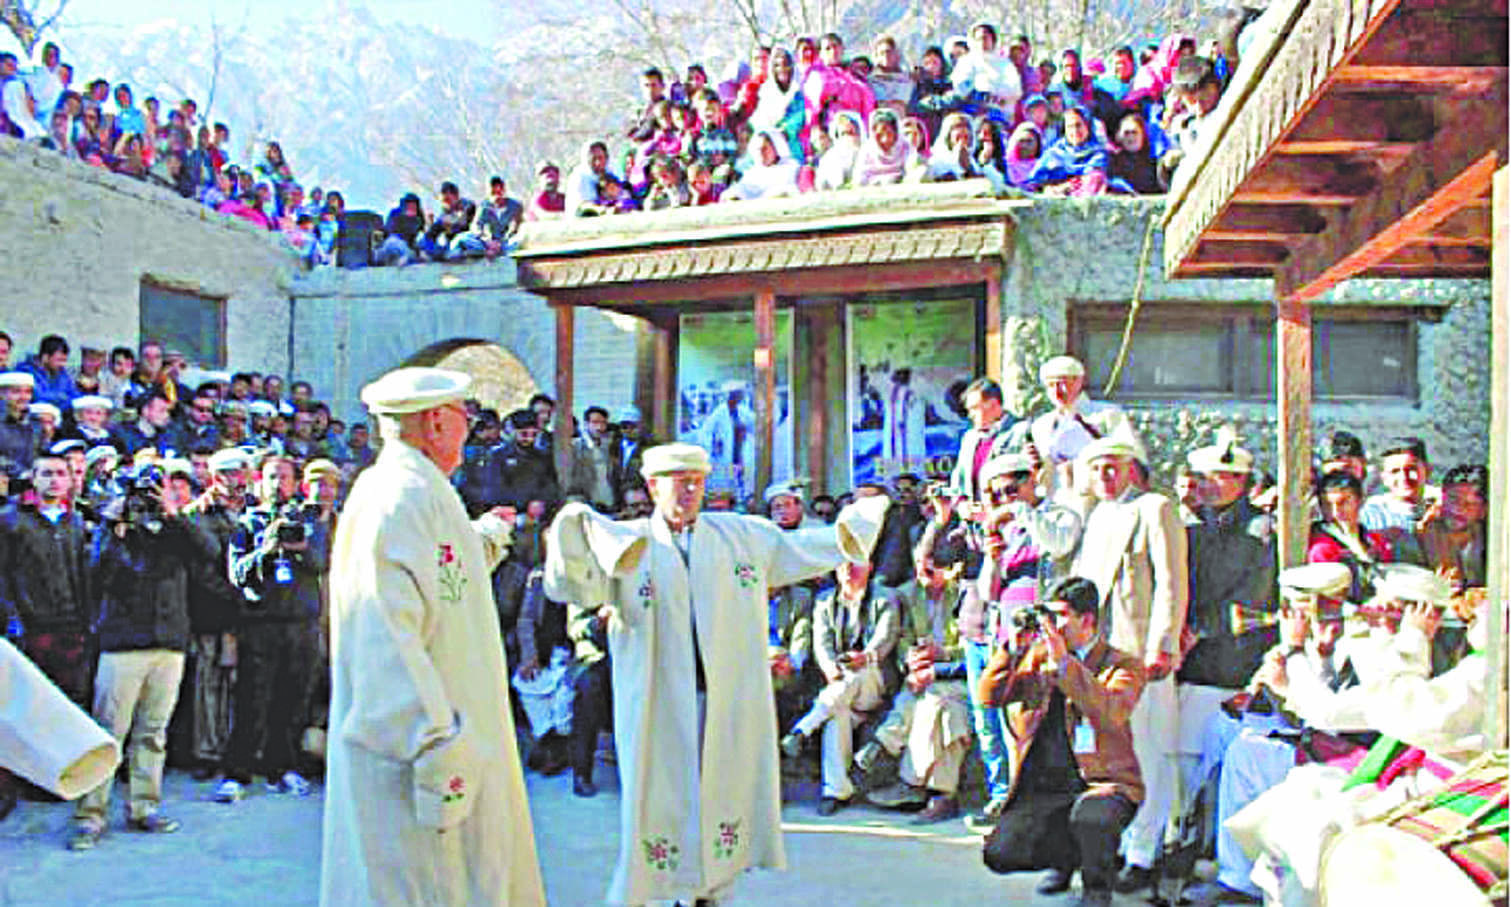 Will reopening tourism in Gilgit-Baltistan provide relief to locals?